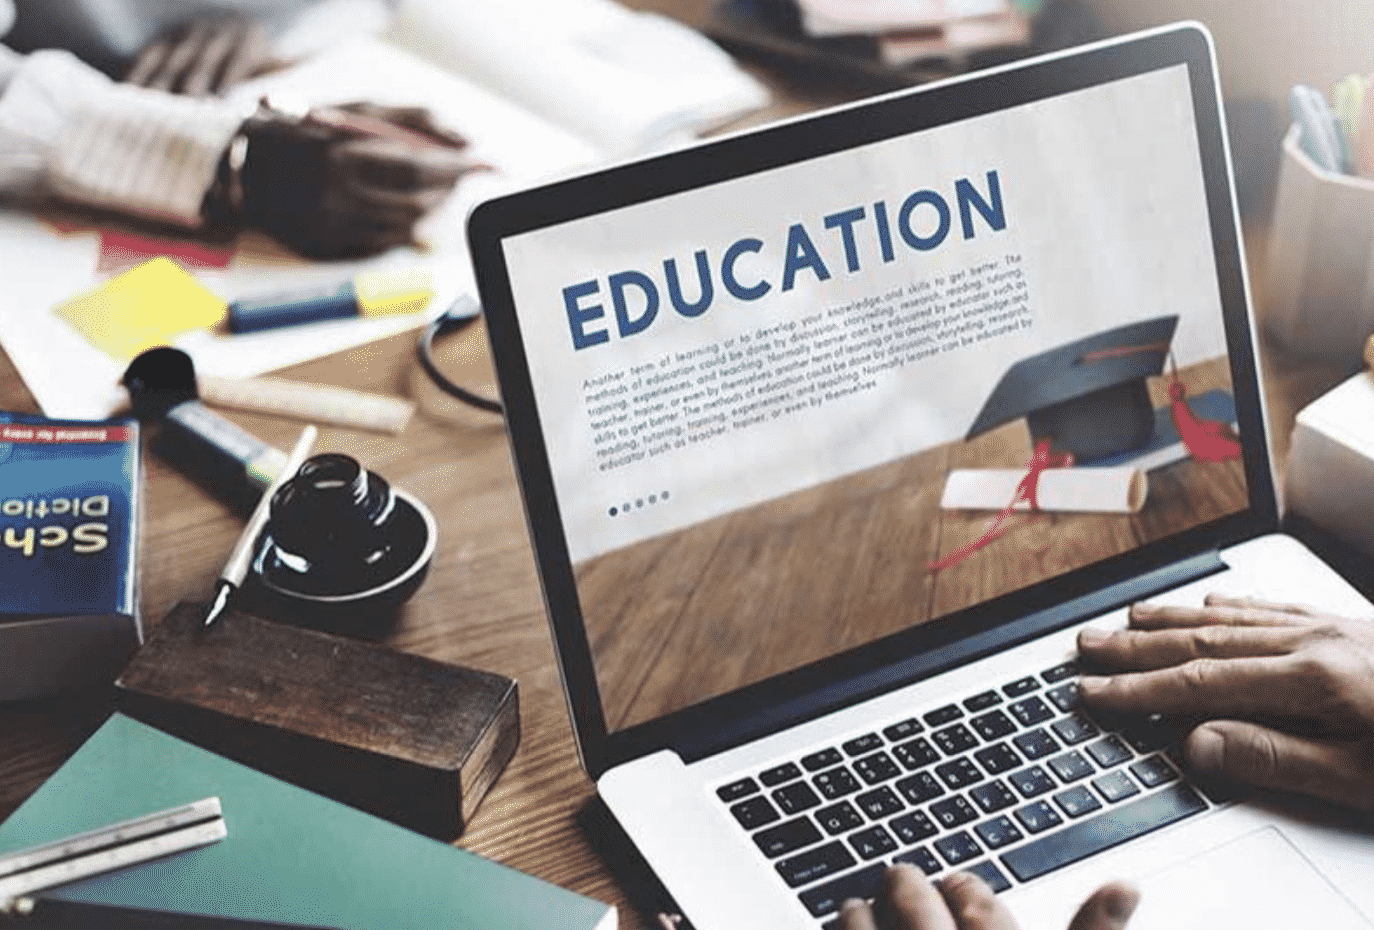 Top 5 Technologies that Take Education to the Next Level